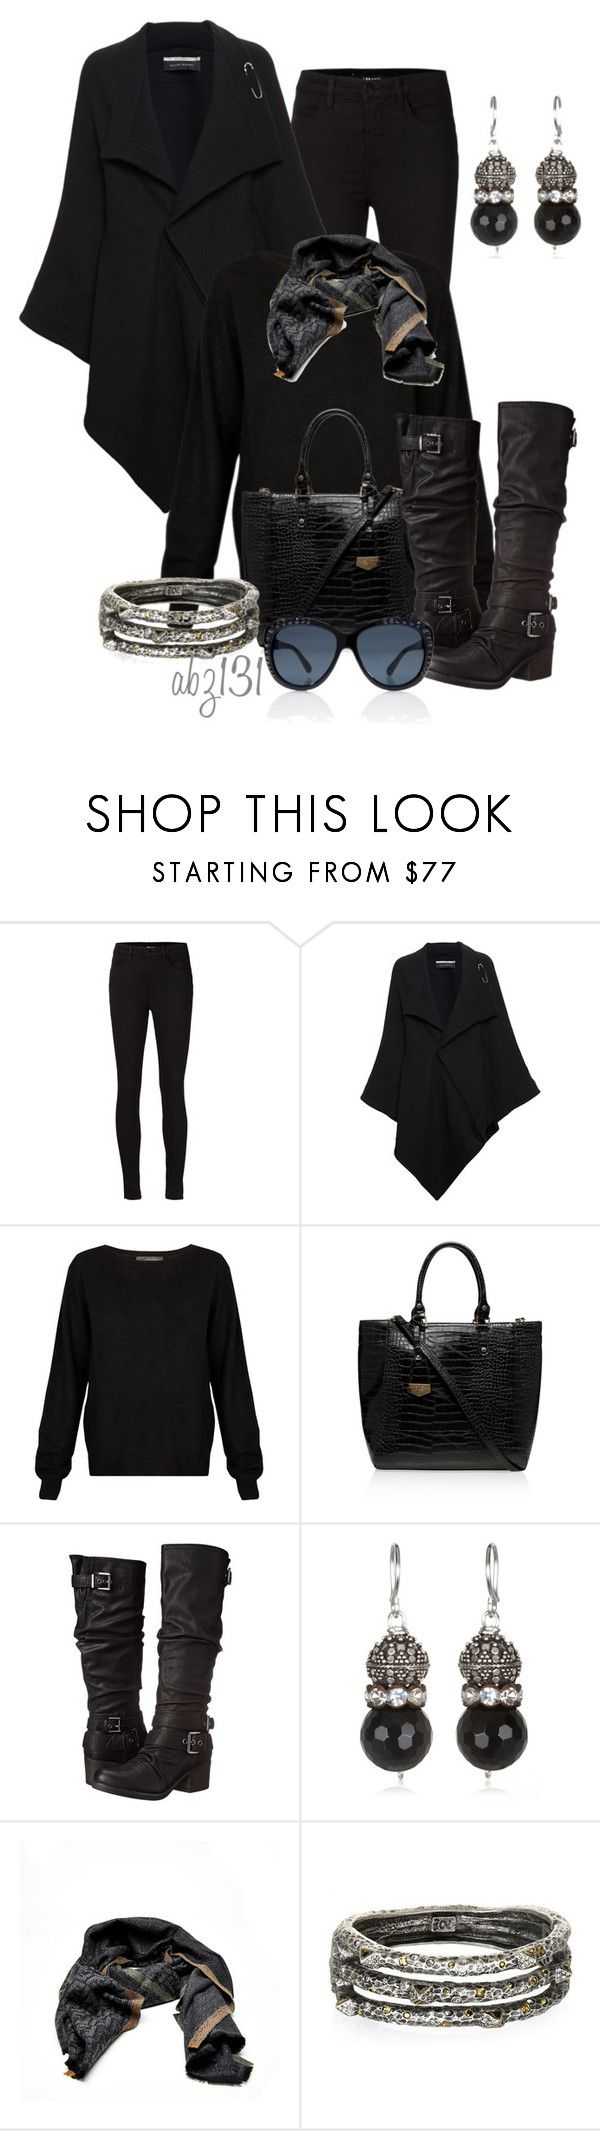 """""""Untitled #1960"""" by anfernee-131 ❤ liked on Polyvore featuring J Brand, Roland Mouret, 360 Sweater, Carvela Kurt Geiger, Carlos by Carlos Santana, Fendi and Tory Burch"""